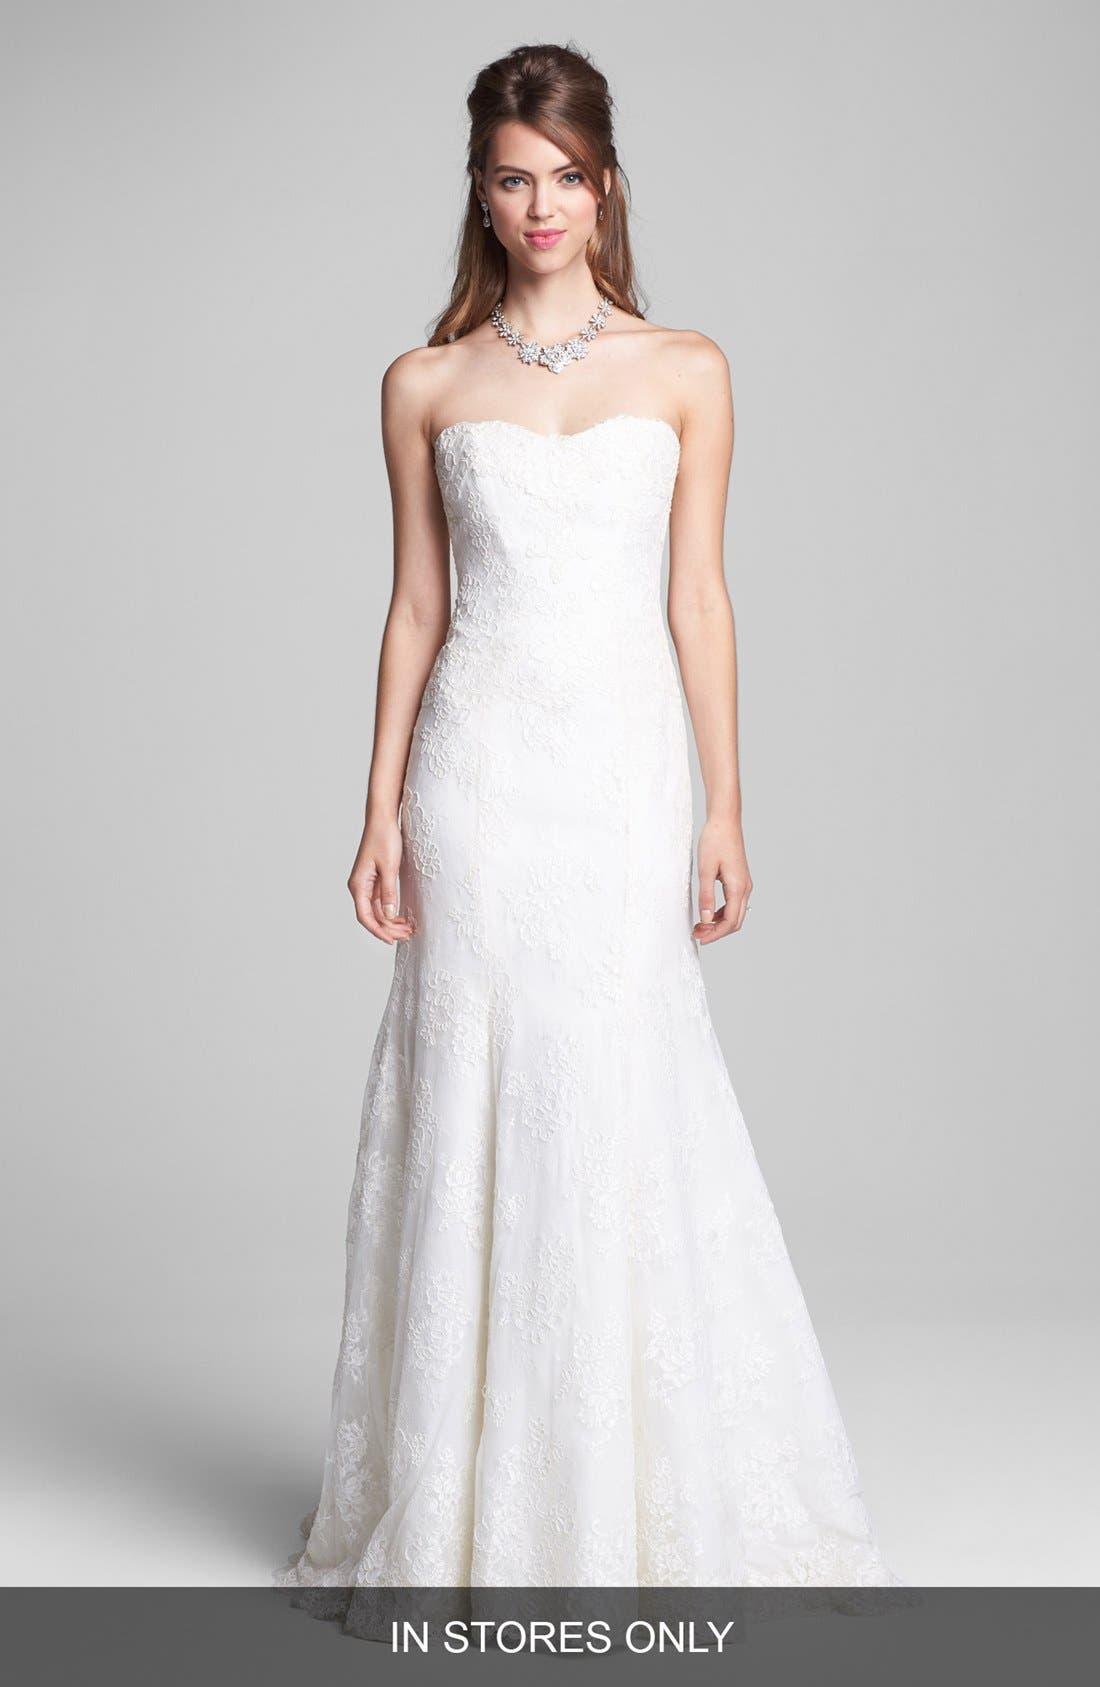 BLISS Monique Lhuillier Embroidered Lace Trumpet Dress (In Stores Only)